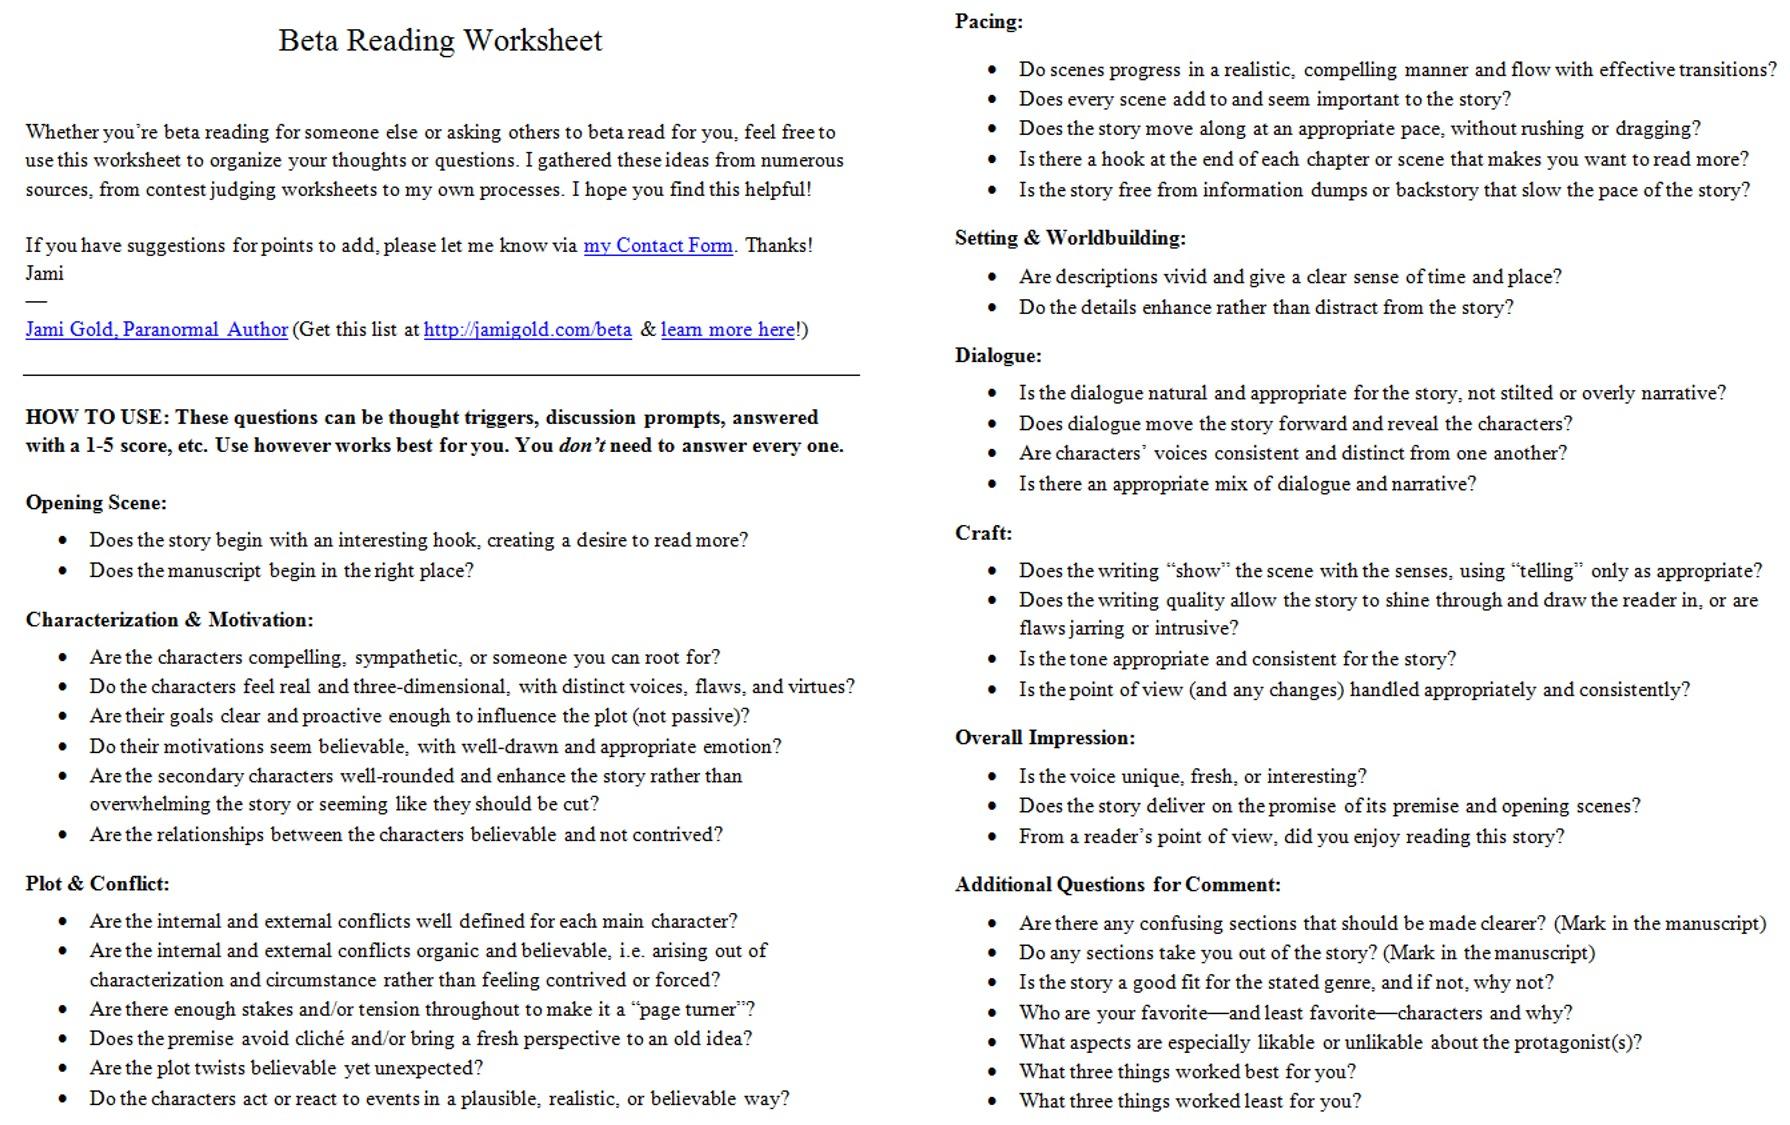 Weirdmailus  Pleasant Worksheets For Writers  Jami Gold Paranormal Author With Engaging Screen Shot Of The Twopage Beta Reading Worksheet With Comely Chromosome Structure Worksheet Also Identifying Subject And Verb Worksheets In Addition Simple Geometry Worksheets And Local Government Worksheets As Well As Color Worksheets For Preschool Additionally English Worksheets For Th Grade From Jamigoldcom With Weirdmailus  Engaging Worksheets For Writers  Jami Gold Paranormal Author With Comely Screen Shot Of The Twopage Beta Reading Worksheet And Pleasant Chromosome Structure Worksheet Also Identifying Subject And Verb Worksheets In Addition Simple Geometry Worksheets From Jamigoldcom